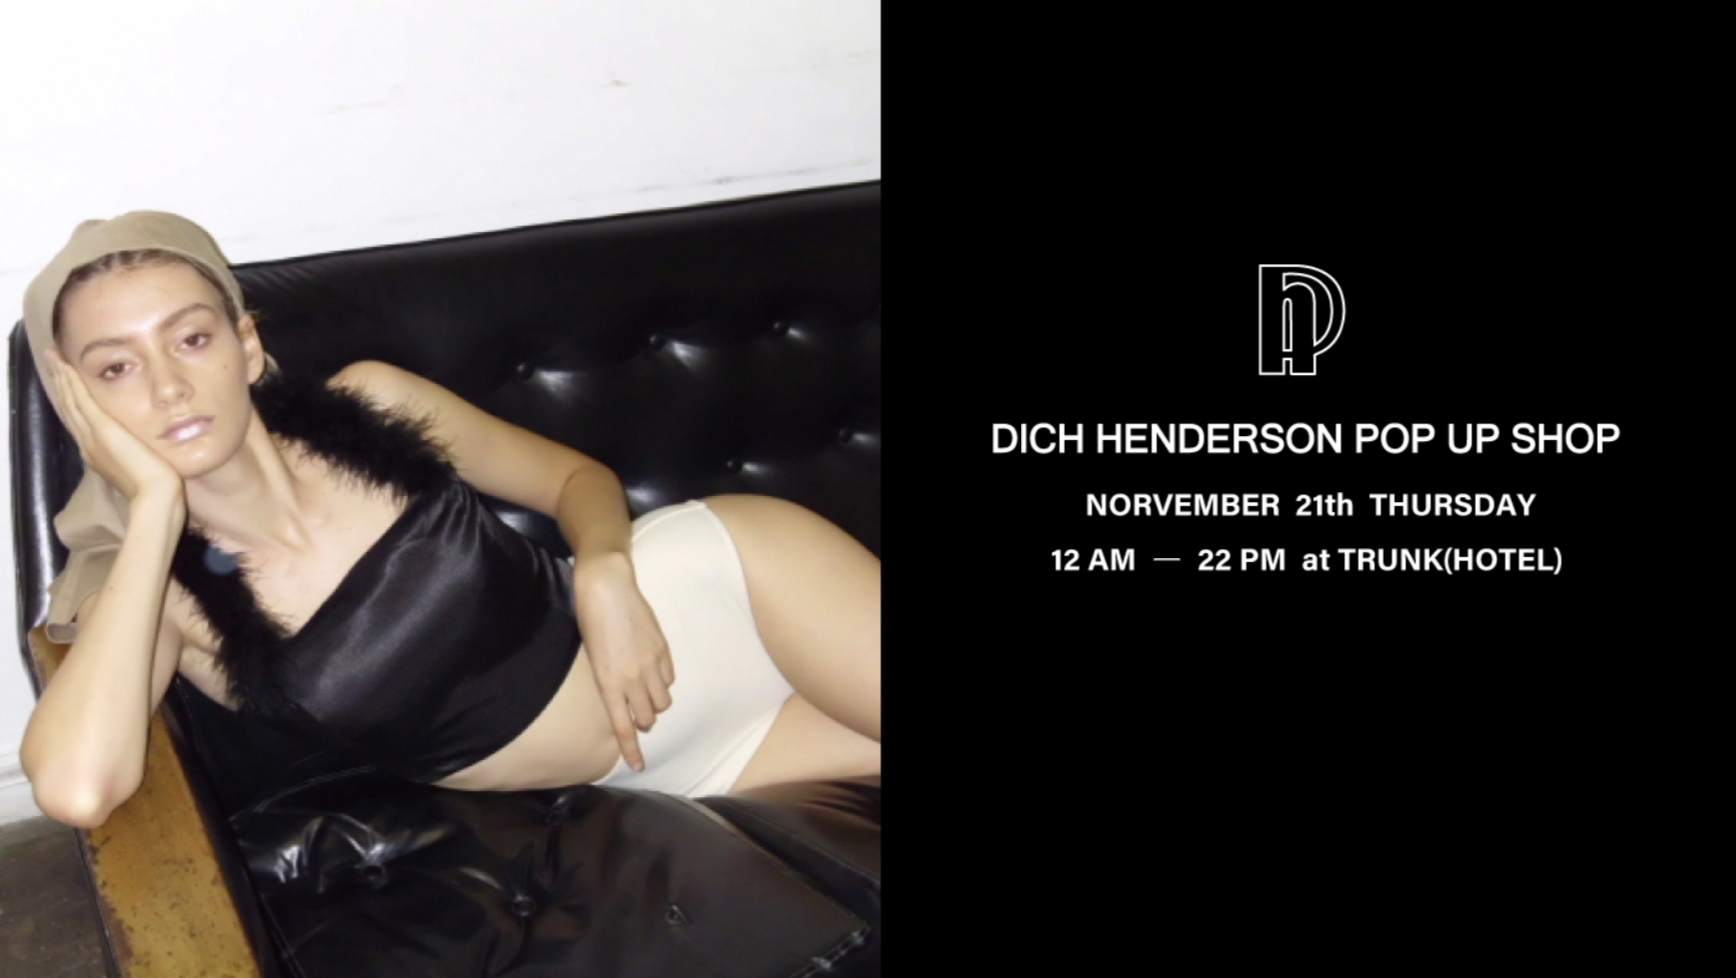 DICH HENDERSON POPUP